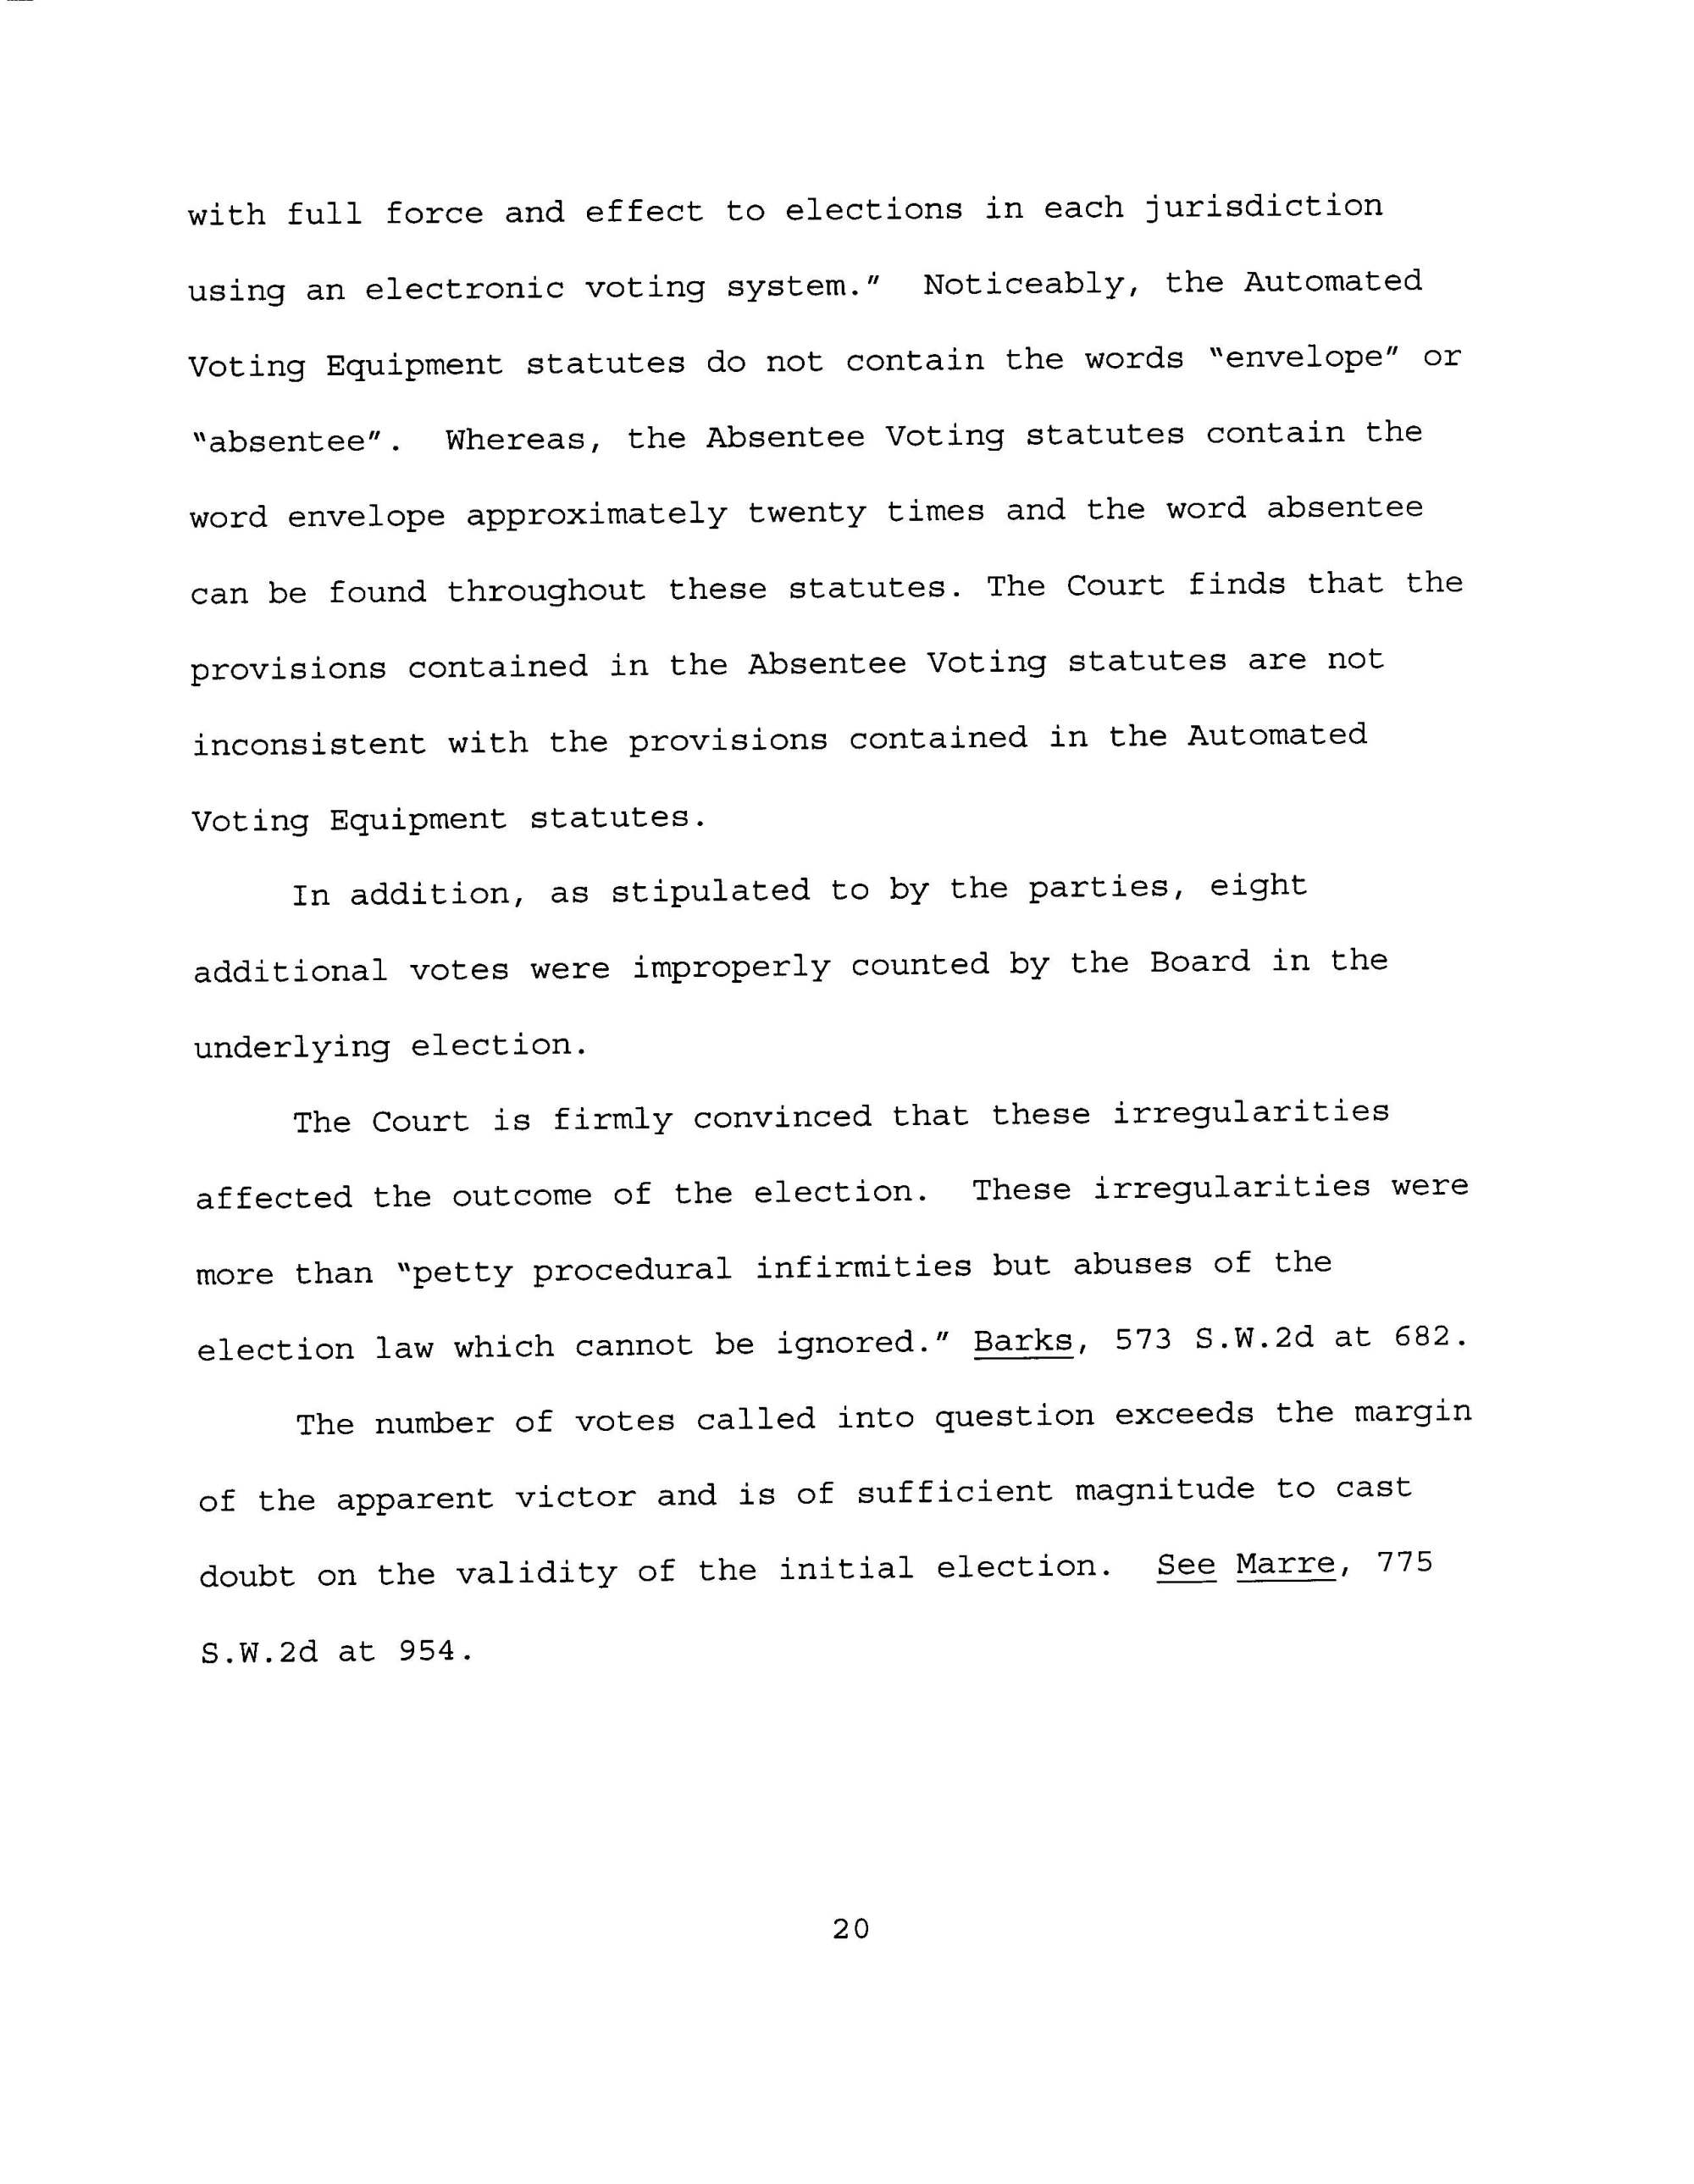 018 Memorandumorderandfinaljudgment Final Page 20quality85stripallw2000 Essay Example Why Is It Important To Vote Top Contest Full